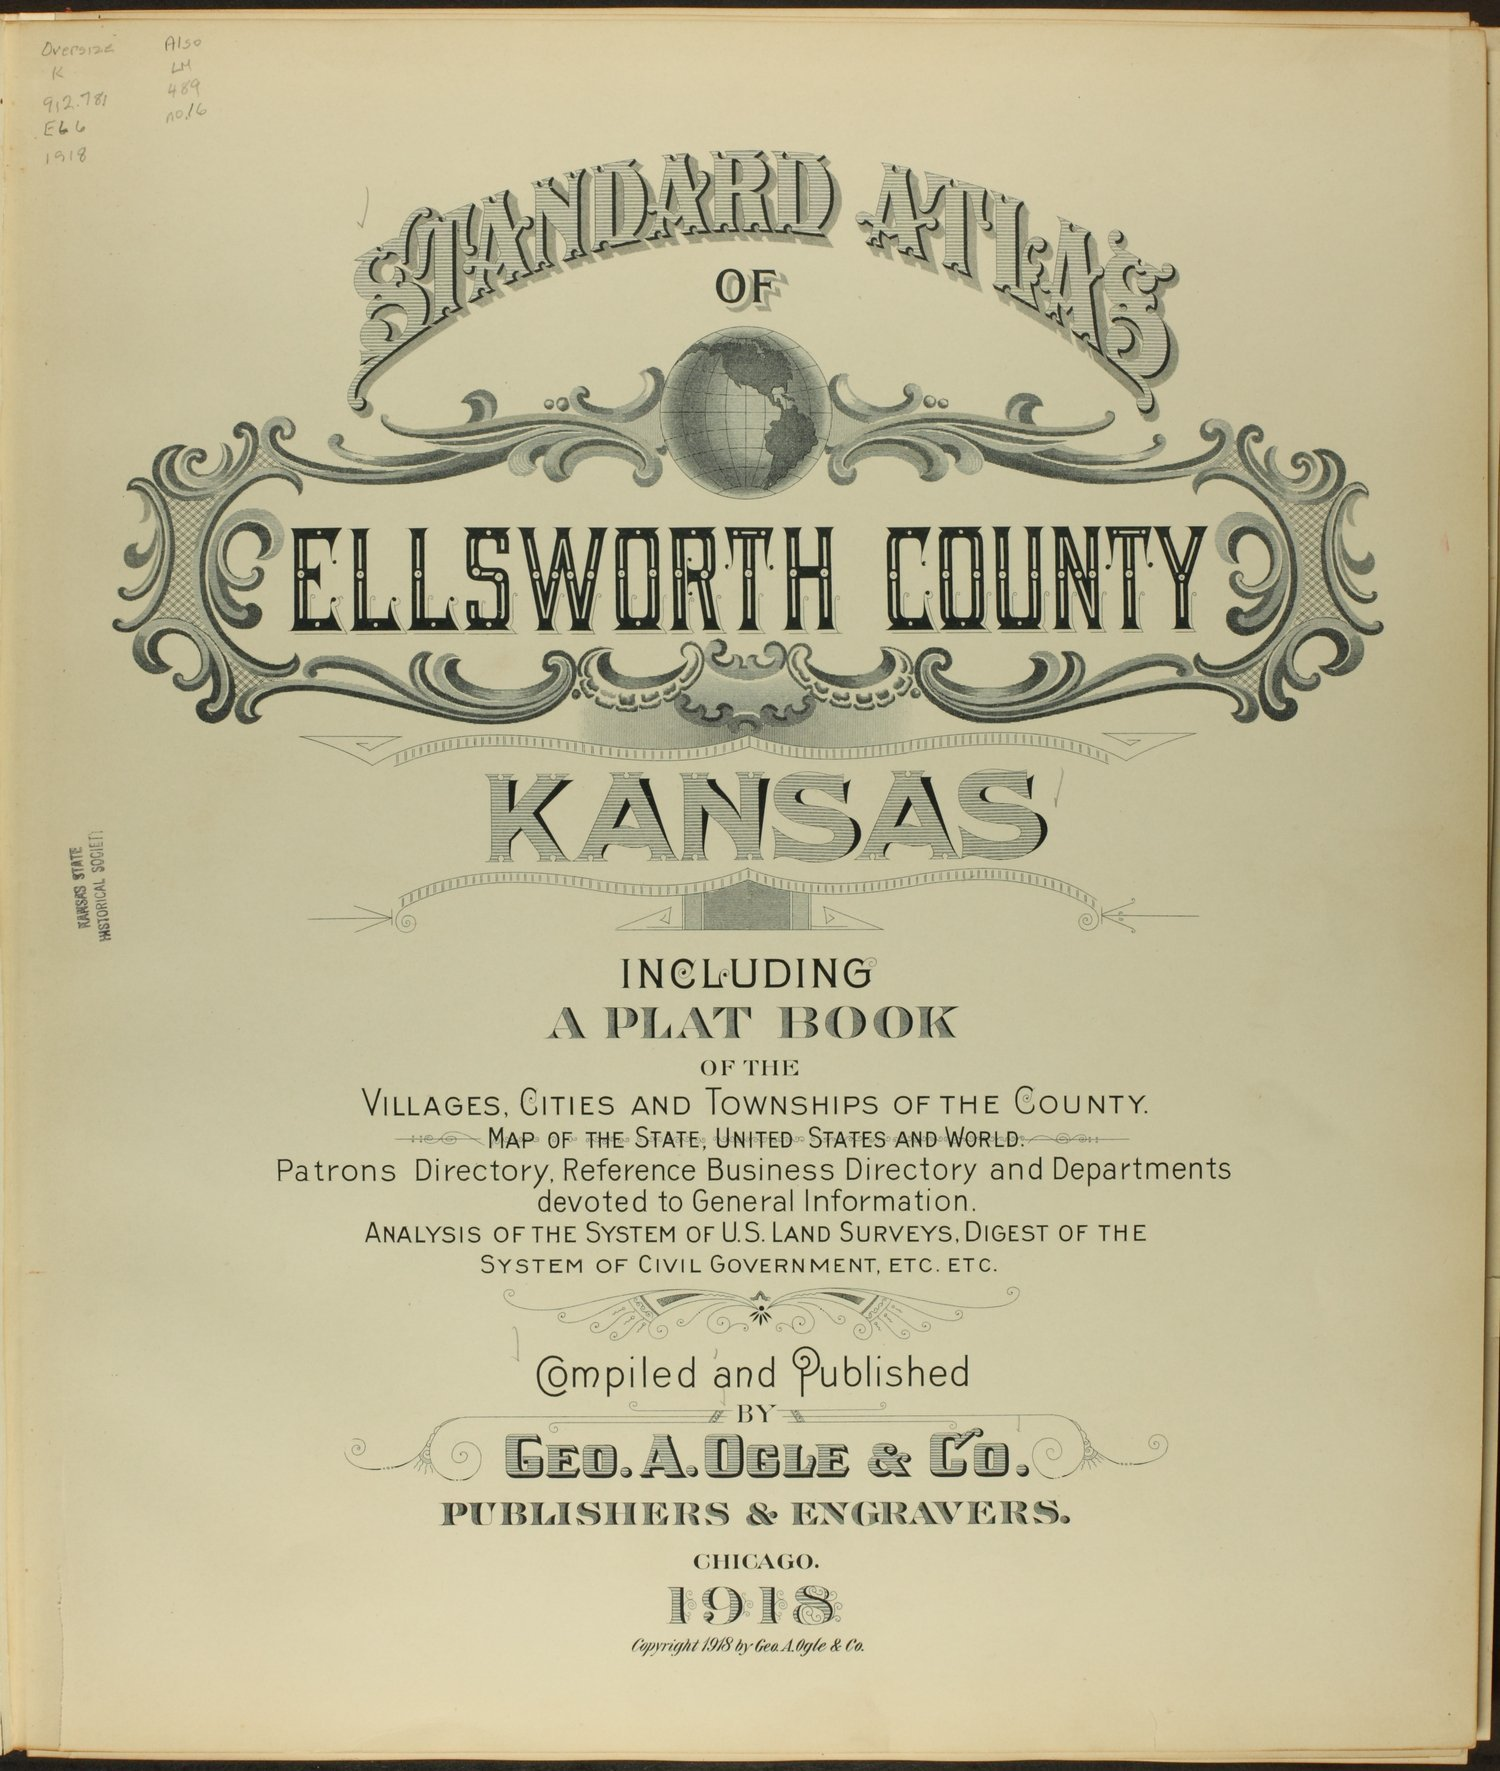 Standard atlas of Ellsworth County, Kansas - Title Page